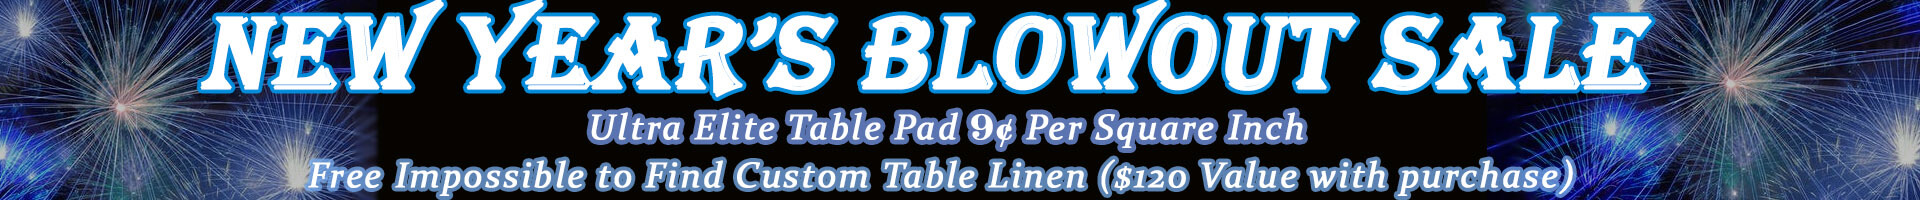 New Years Blowout Special - Get An Ultra Elite Table Pad For 9 Cents A Square Inch